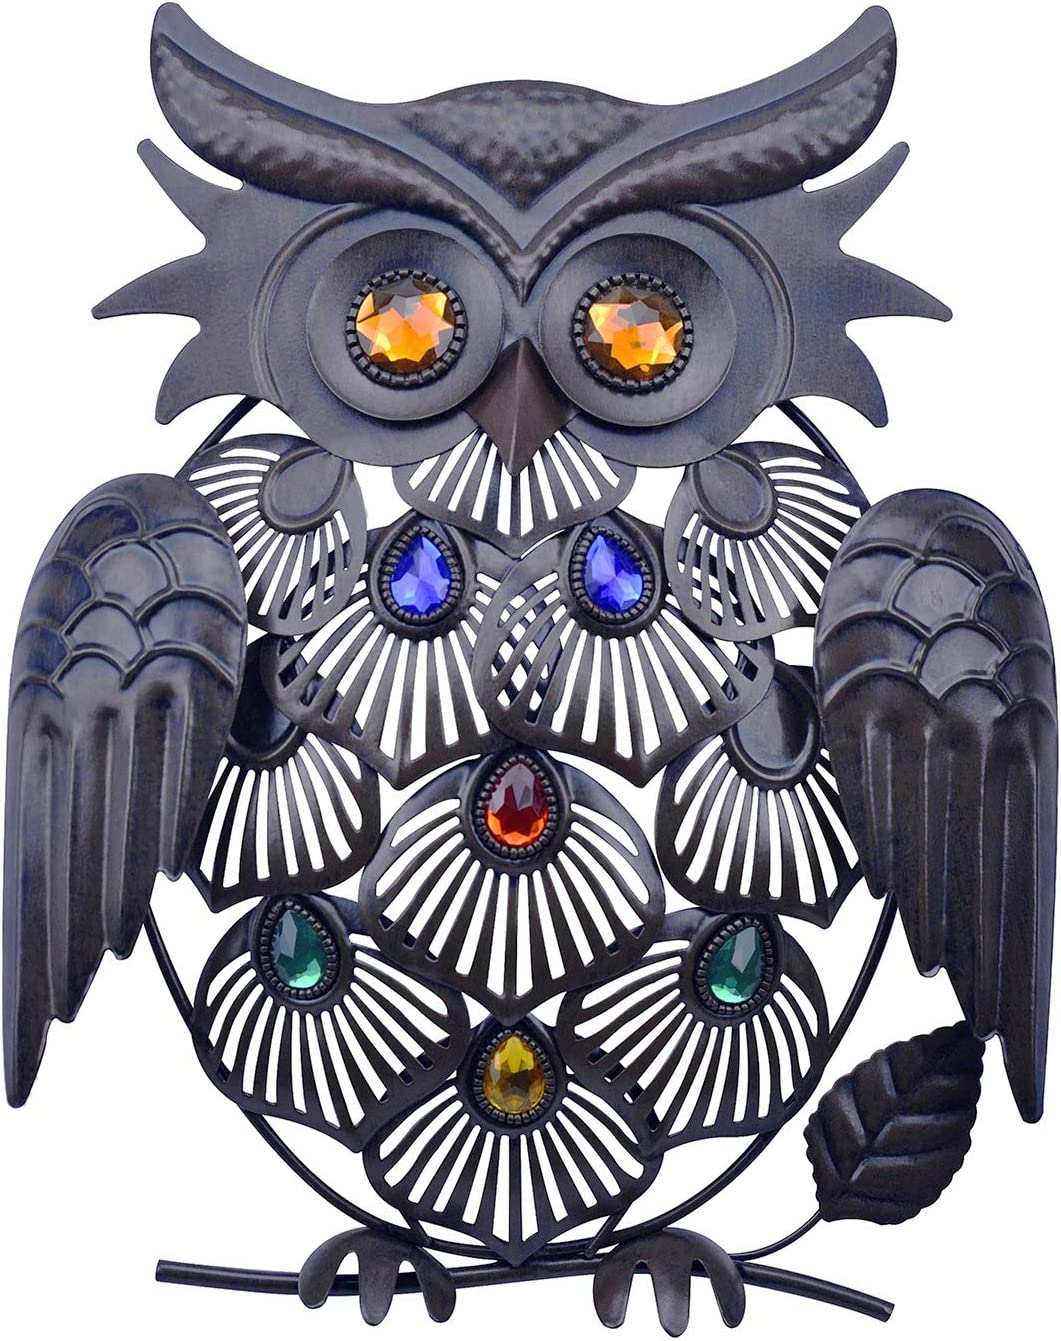 SVEIKS Metal Owl Wall Decor Hanging for Indoors or Outdoors (Red Copper)